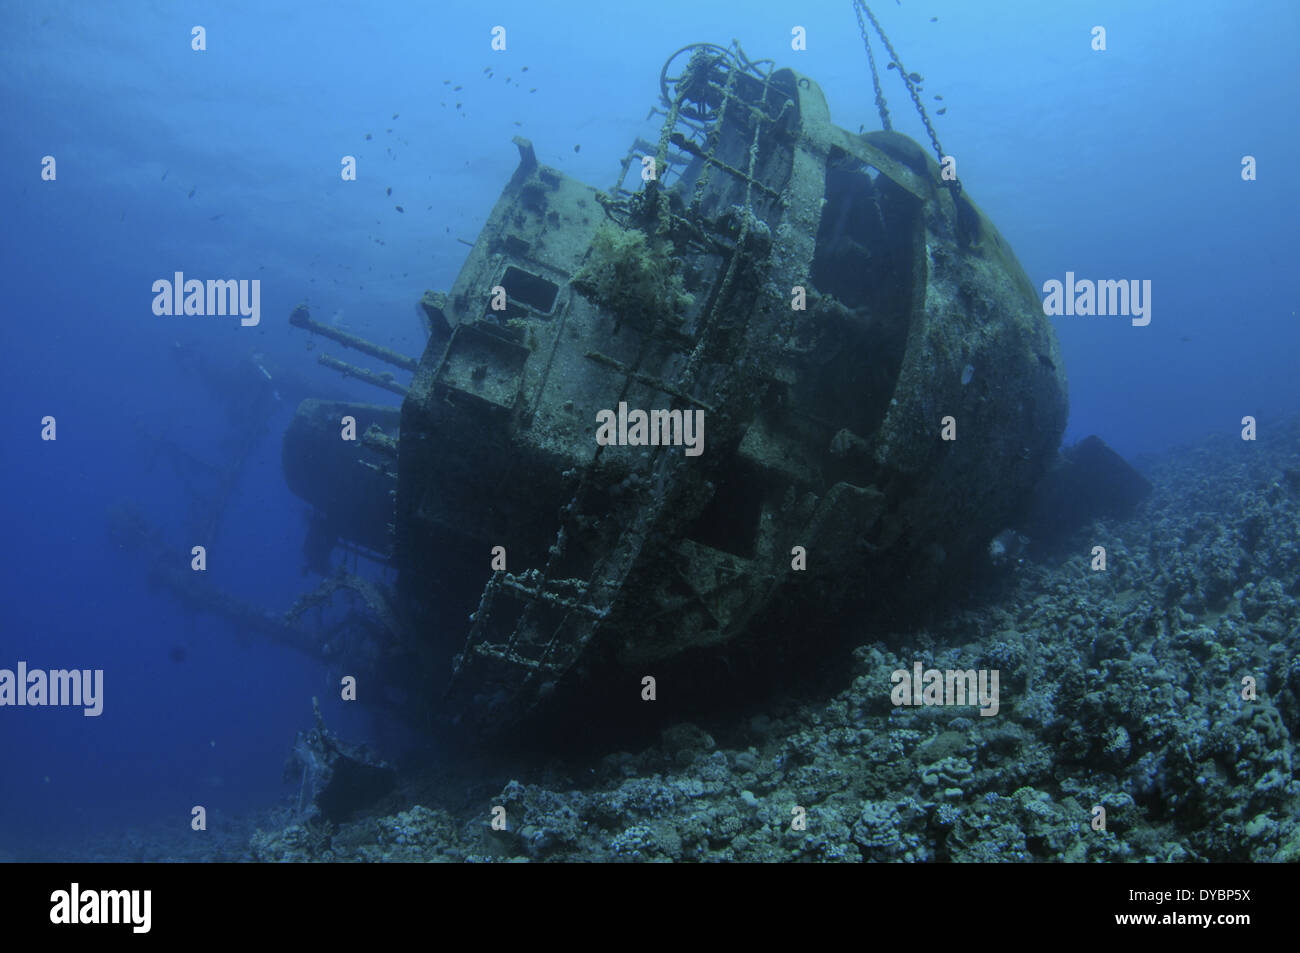 Wreck of the Cedar Pride, Gulf of Aqaba, Red Sea, Jordan - Stock Image